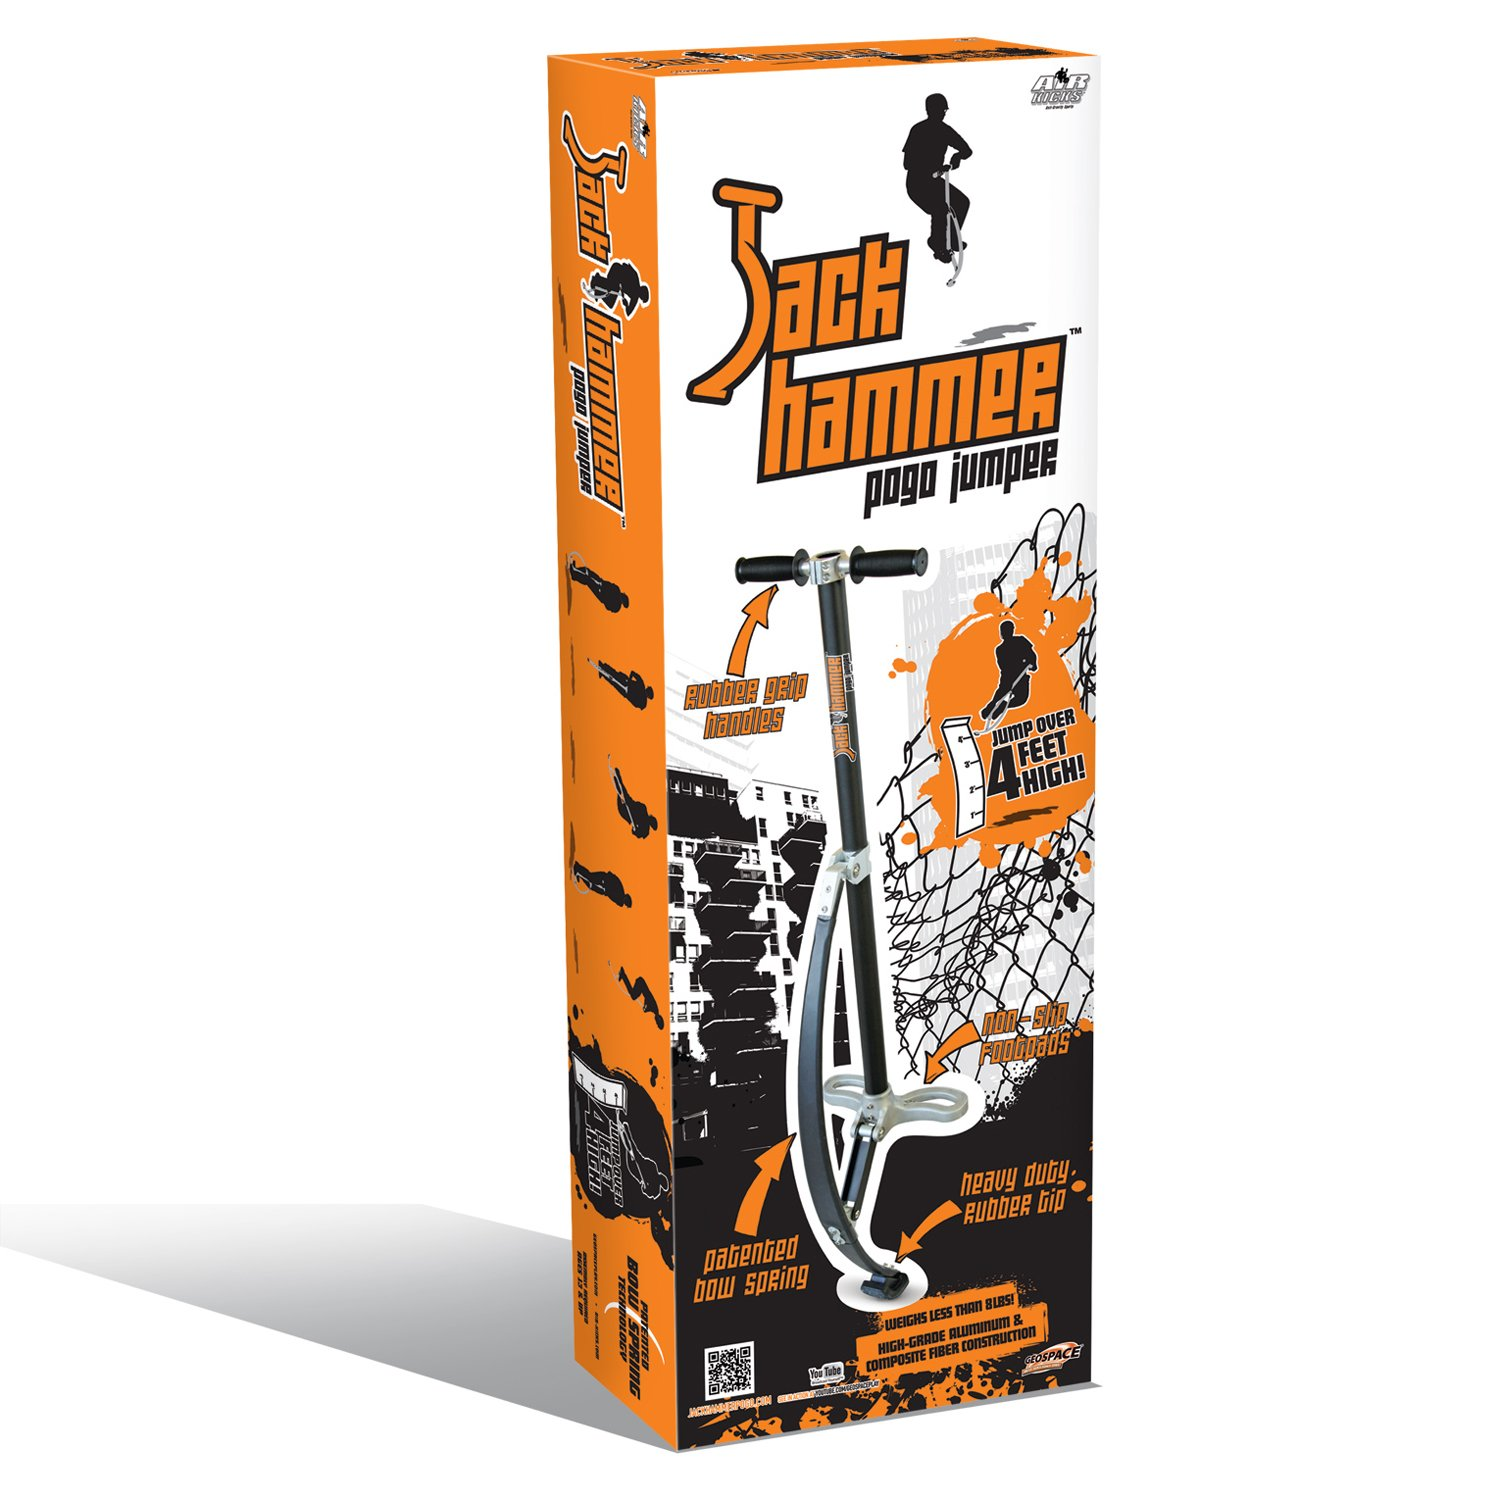 Jumparoo JACK HAMMER Extreme Pogo Jumper by Air Kicks, SMALL 120-154 Lbs. (55-70 Kgs.)